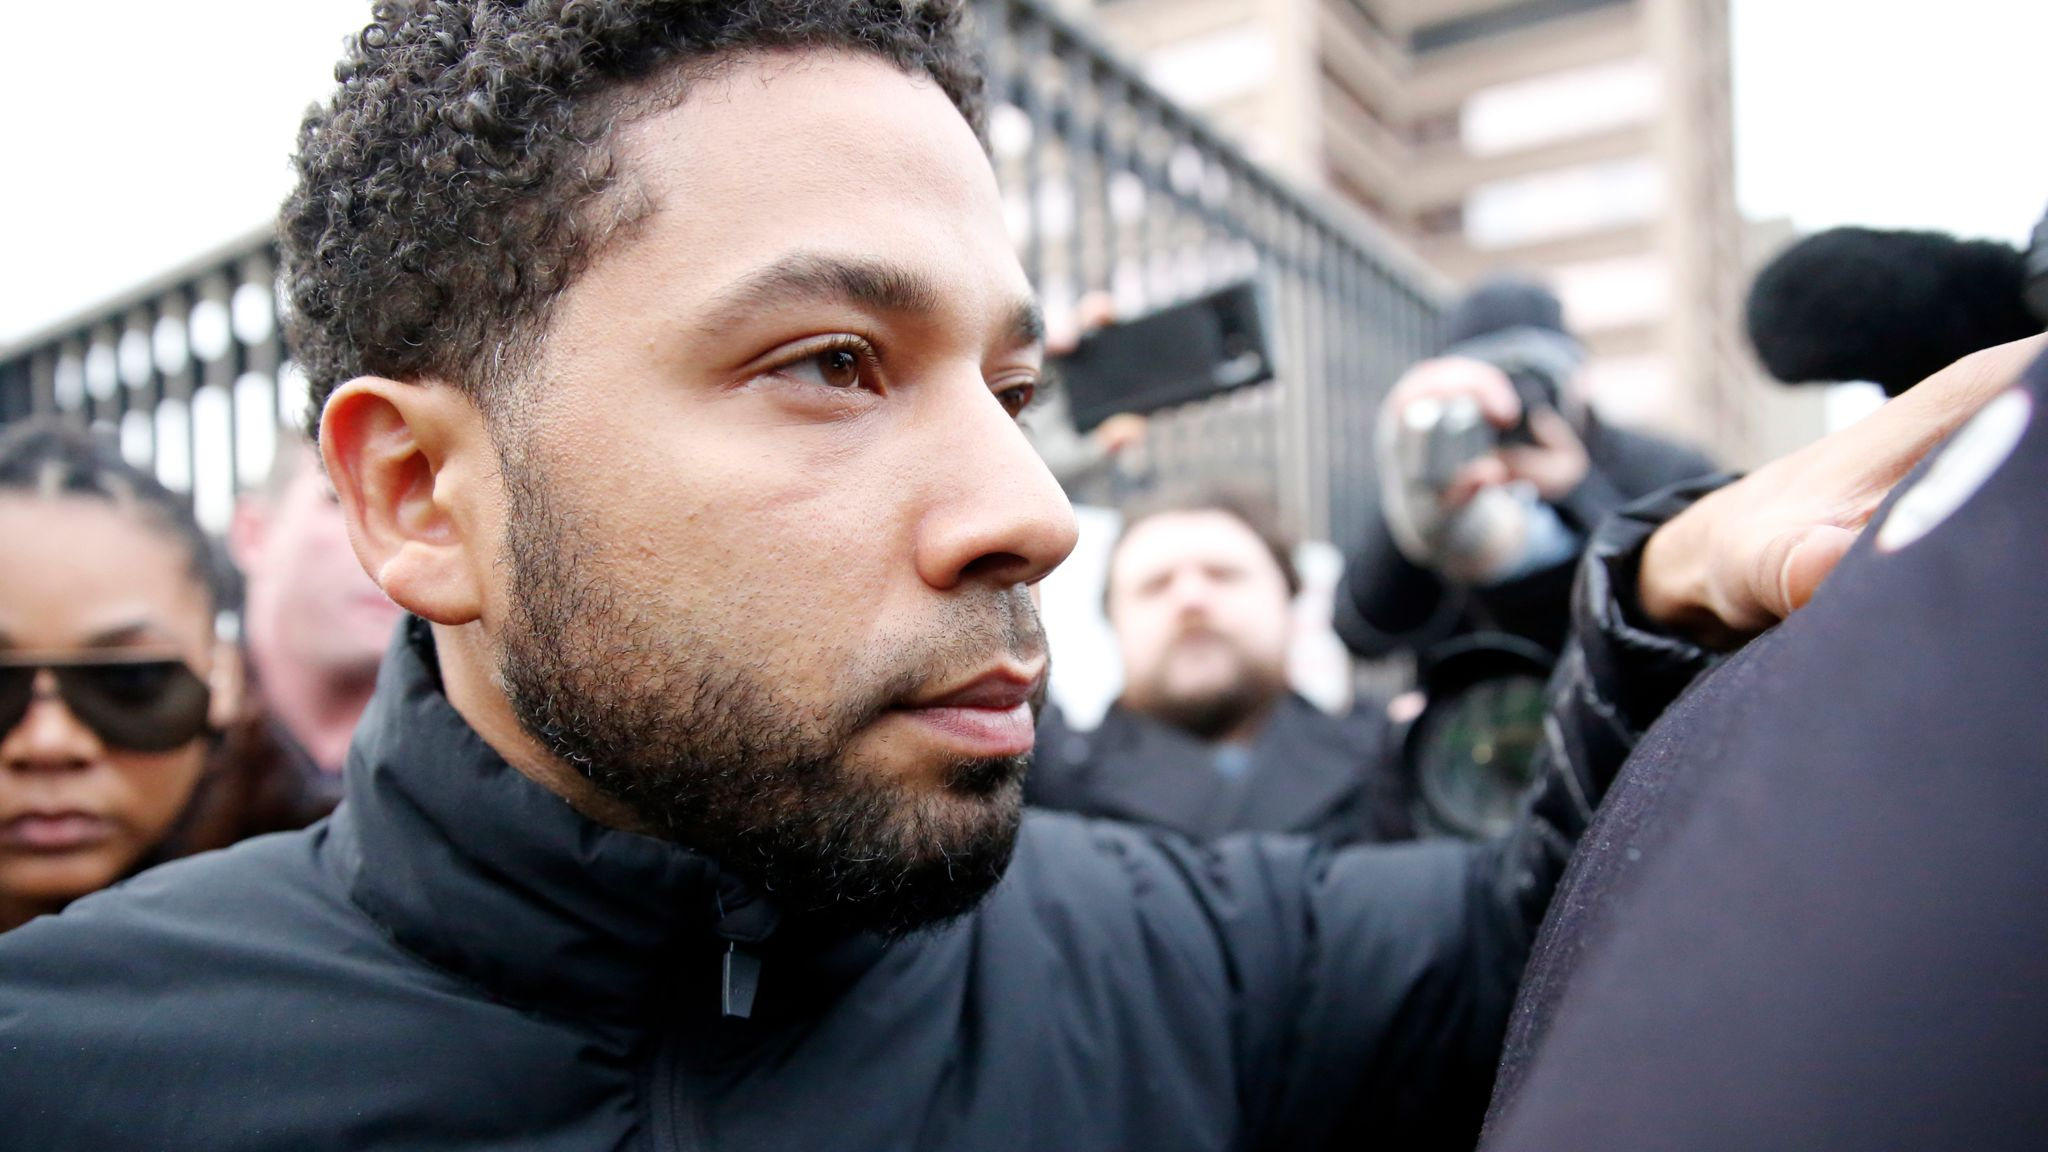 Jussie Smollett axed from Empire episodes after 'race attack hoax